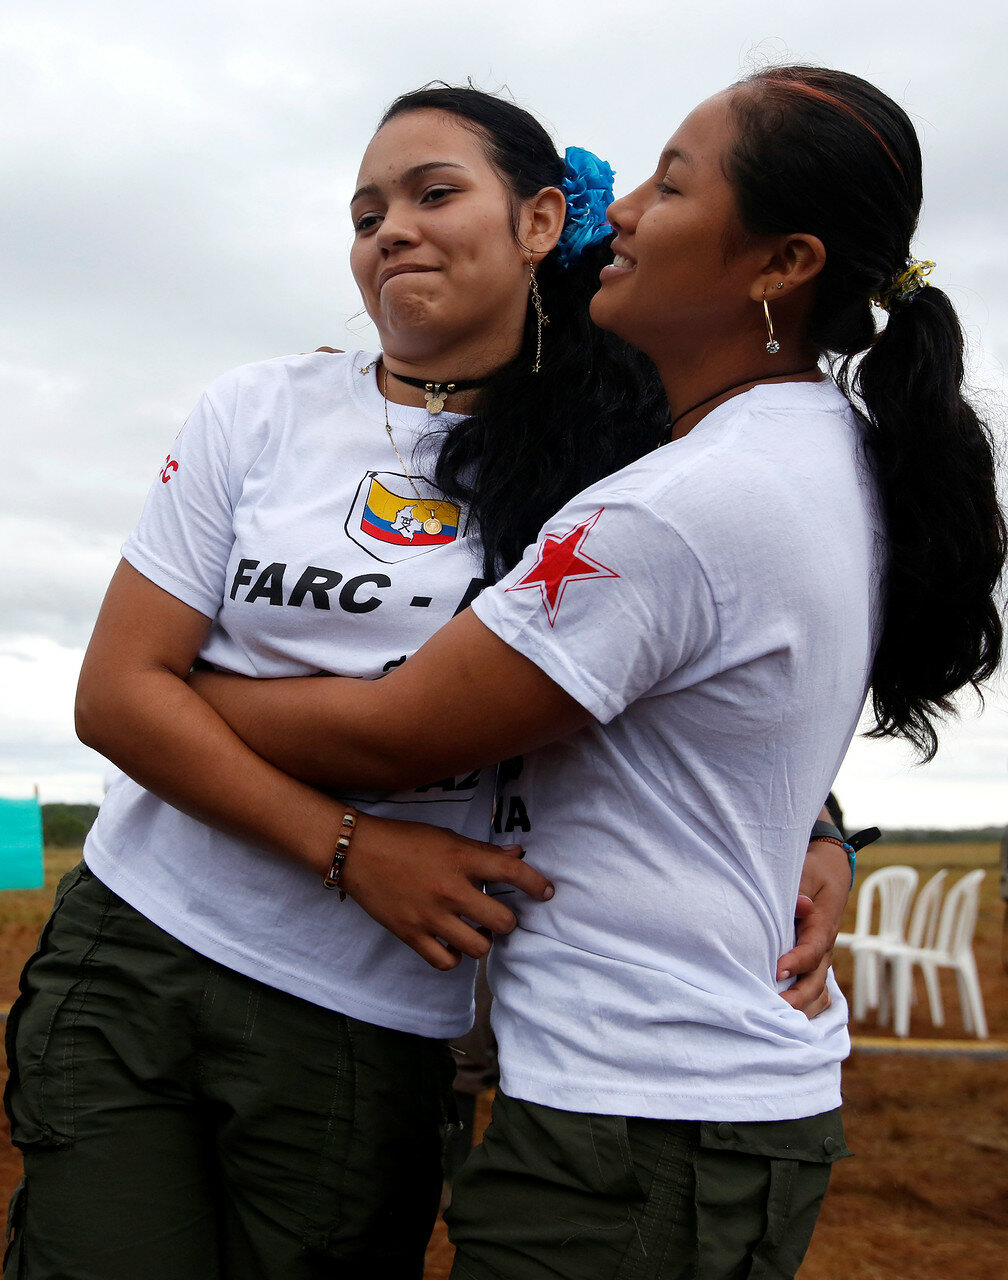 Fighters from Revolutionary Armed Forces of Colombia (FARC), celebrate after opening of ceremony congress at the camp where they prepare for ratifying a peace deal with the government, near El Diamante in Yari Plains, Colombia